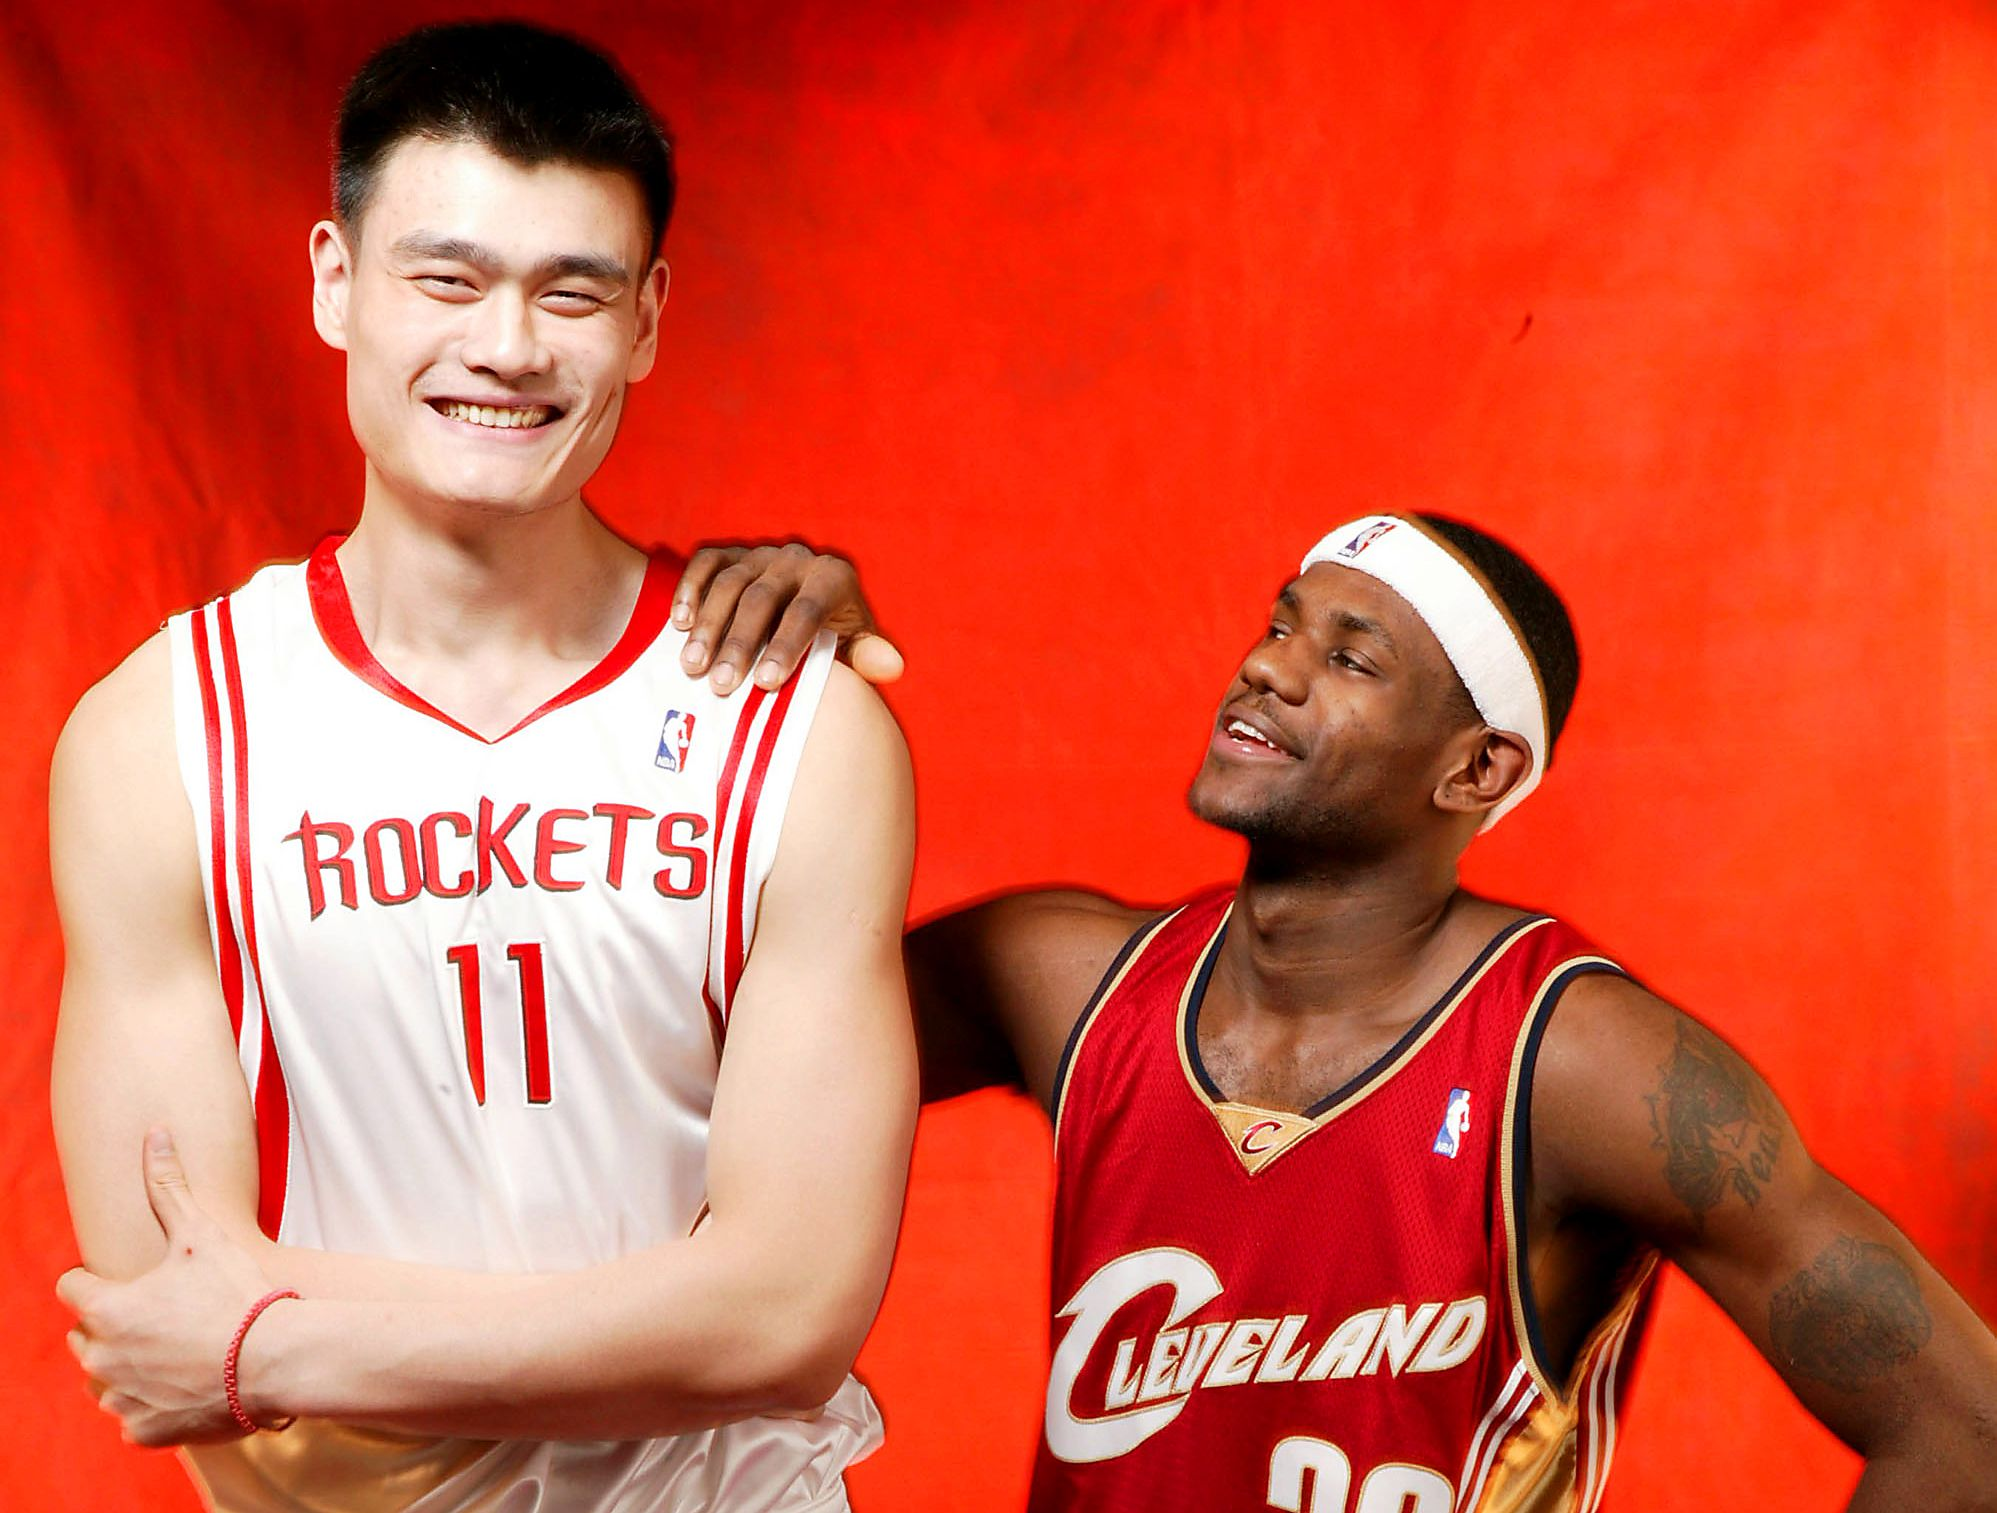 Yao Ming, LeBron James - Yao Ming: A hall of fame photo gallery - ESPN